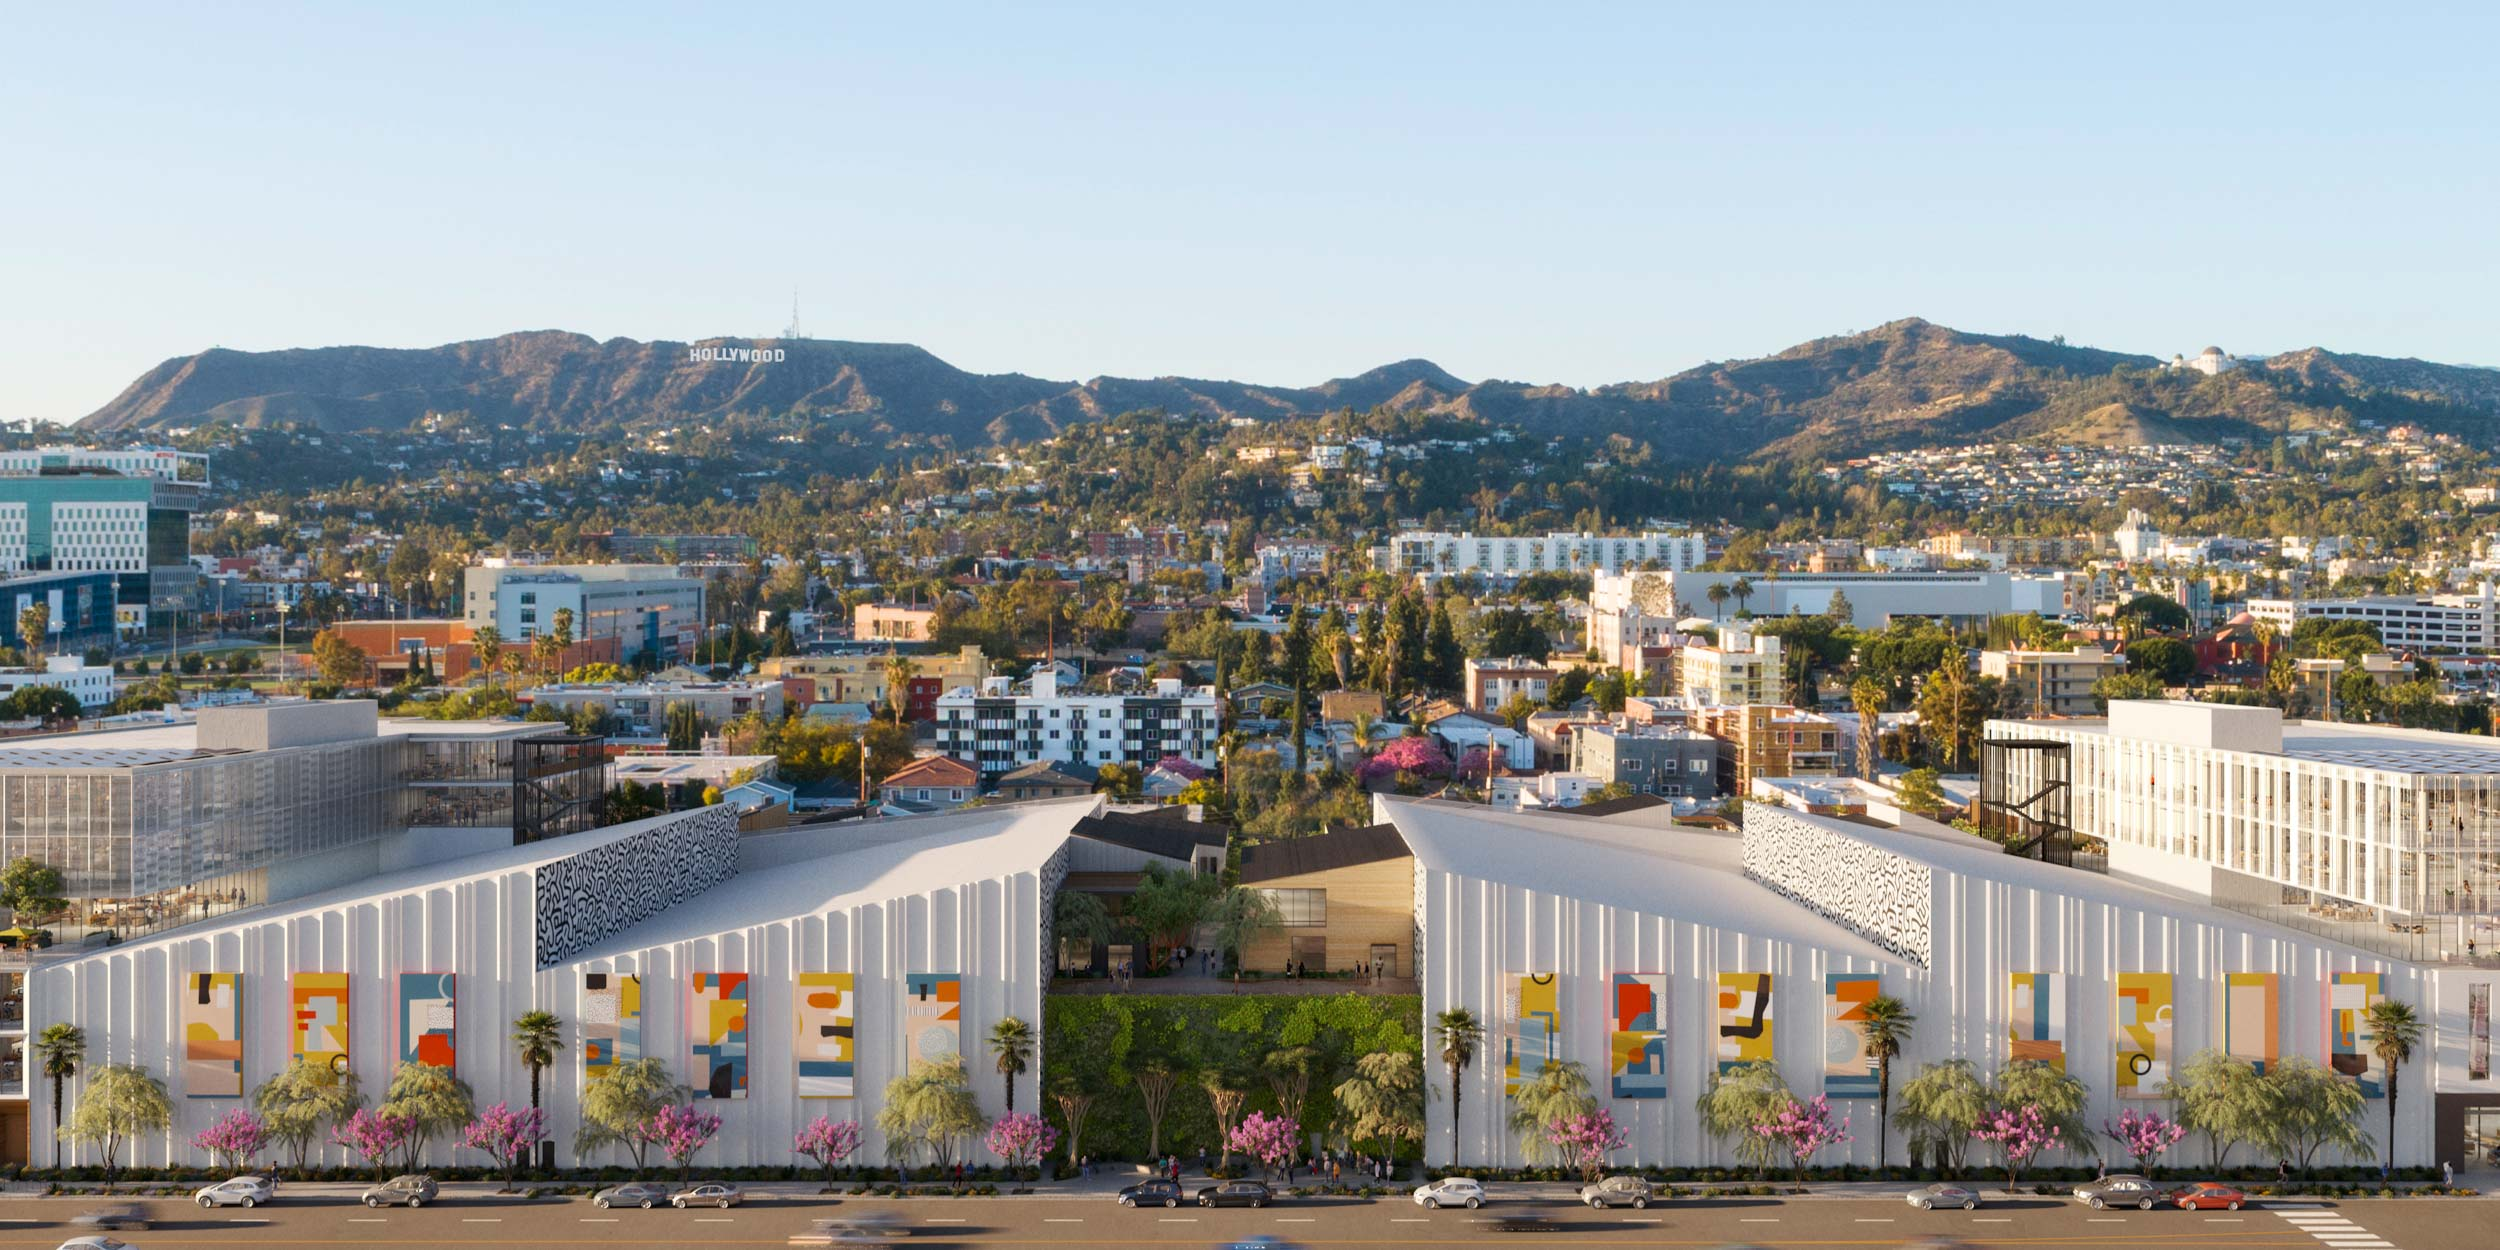 Side view of Echelon Studios building with angled ceilings, hanging art, and a view of the hollywood sign in the mountains behind